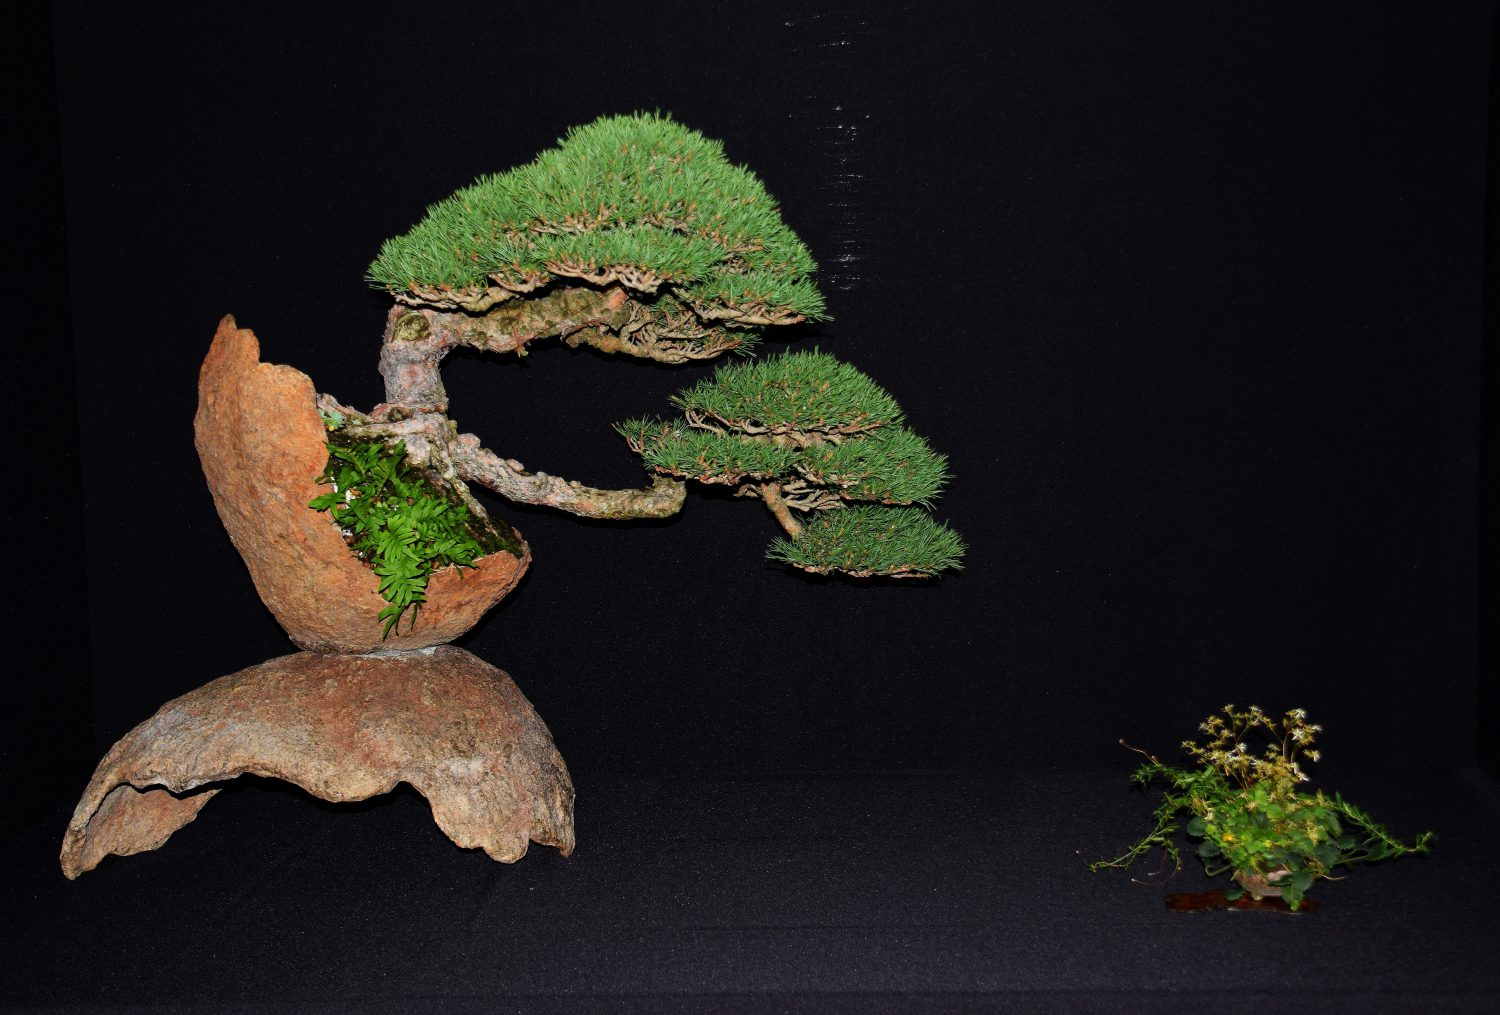 bonsai-museum-luis-vallejo-046